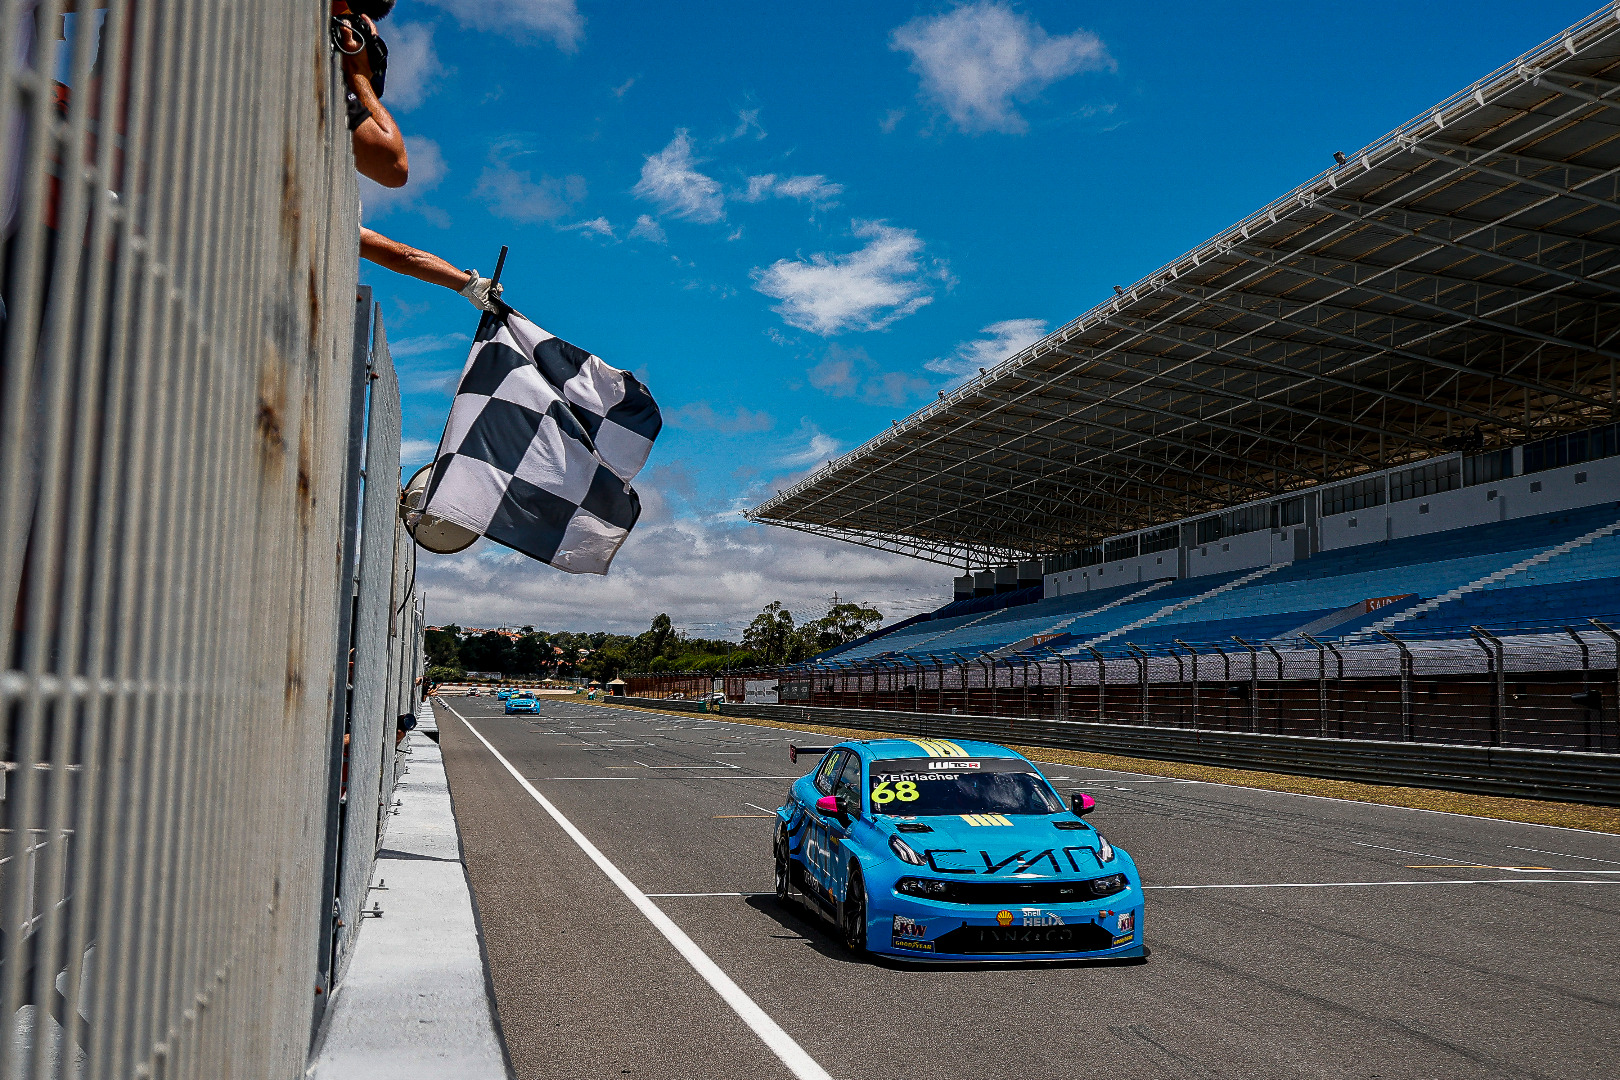 AUTO - WTCR 2021 - RACE OF PORTUGAL